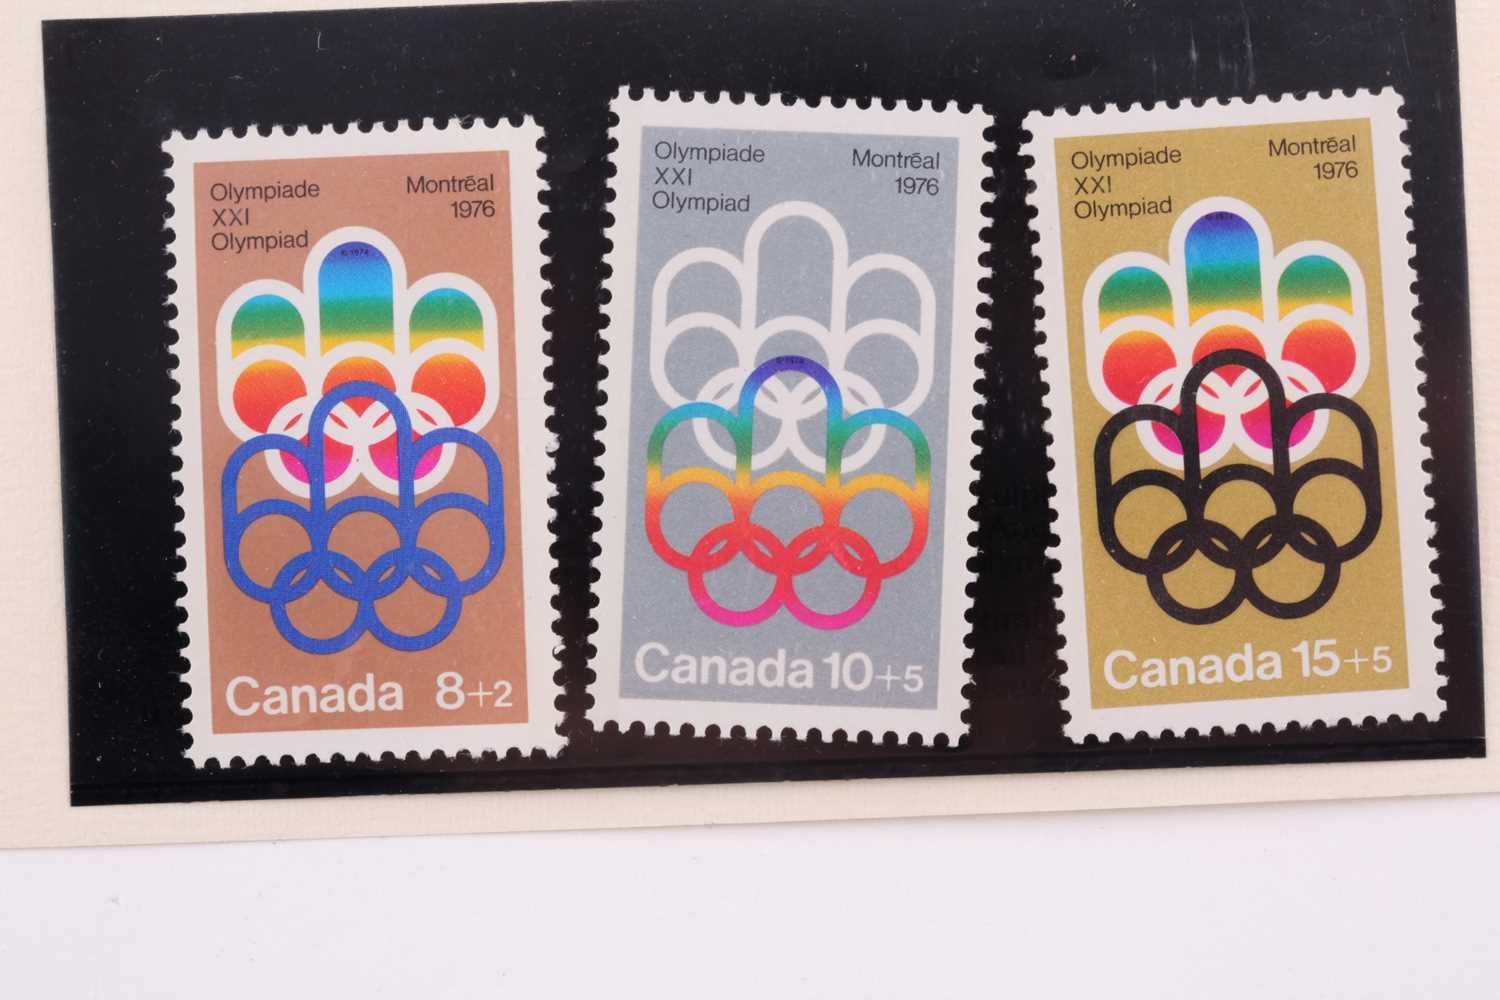 A cased set of three silver ingots, designed as stamps, in honour of the 1976 Summer Olympics, - Image 5 of 8